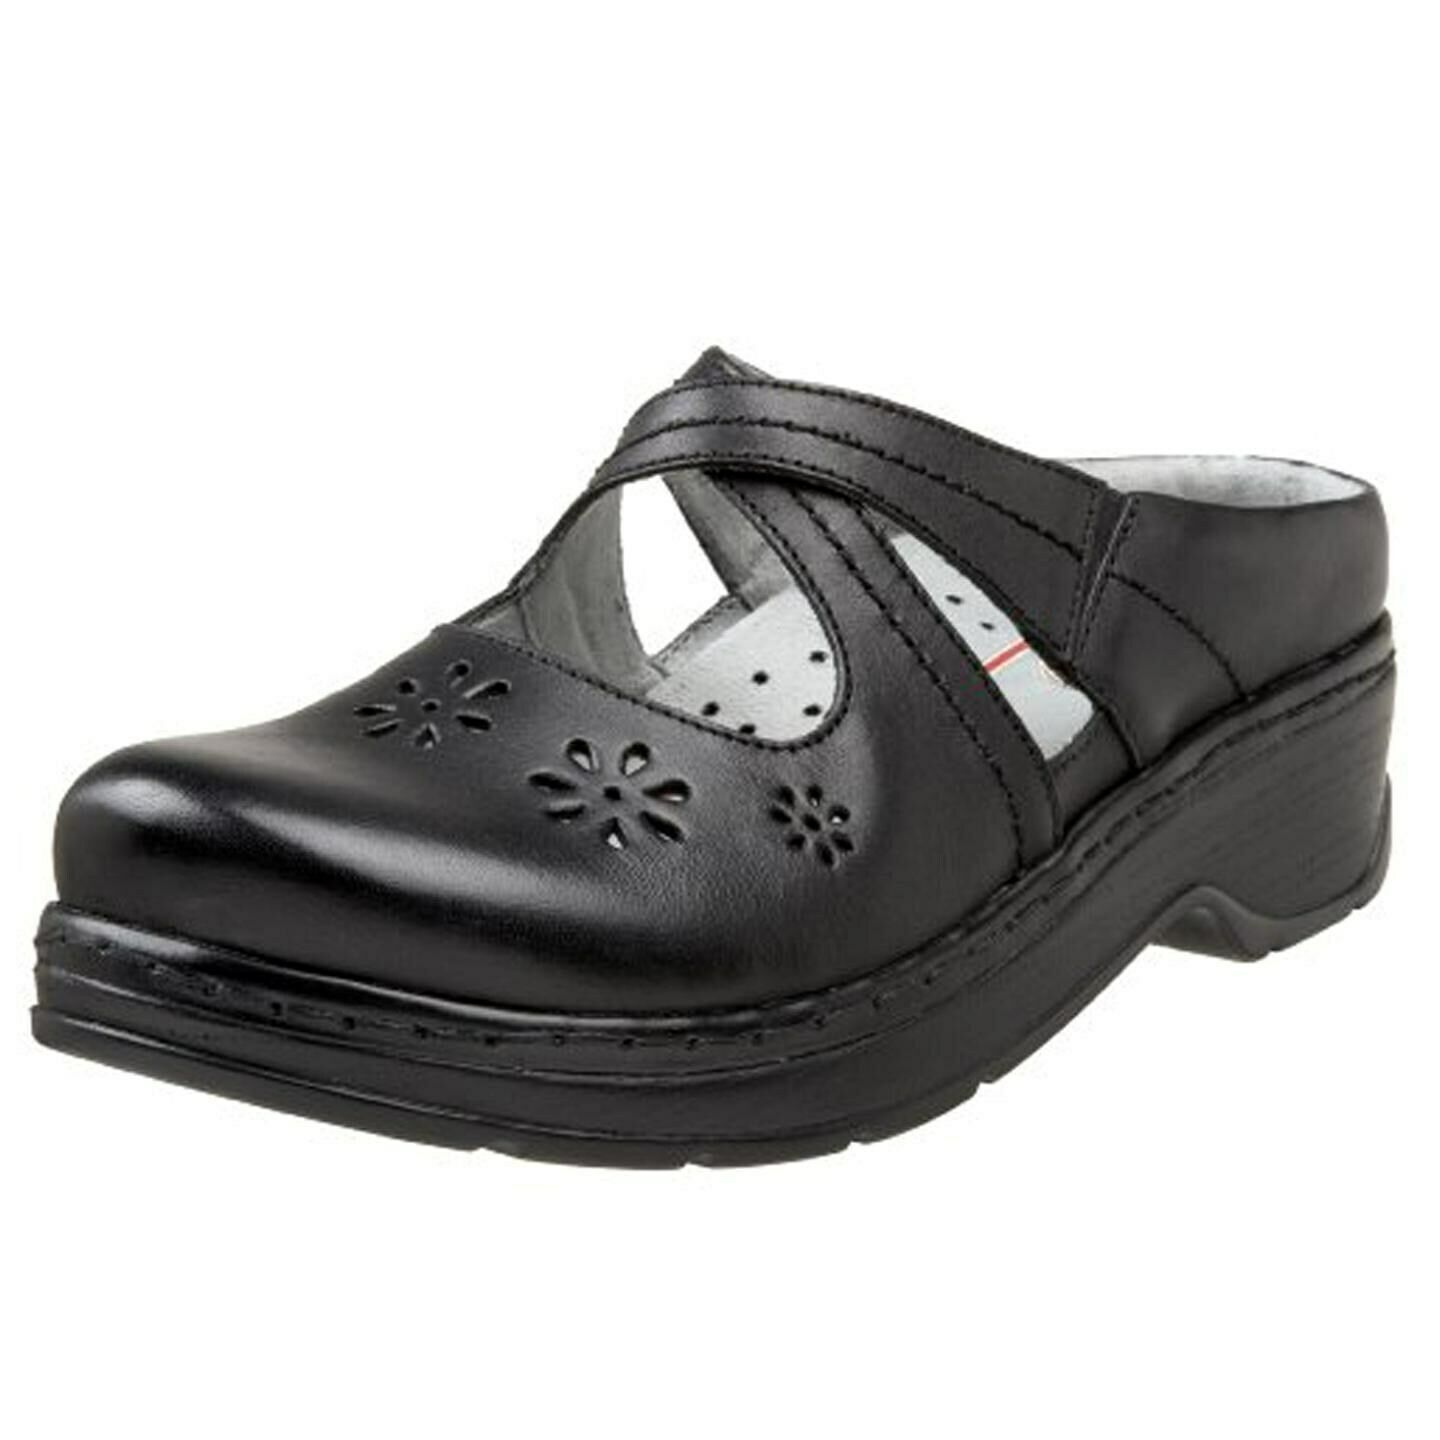 KLOGS CAMILA LEATHER CLOGS DISPLAY MODEL nero SMOOTH 8.5 M